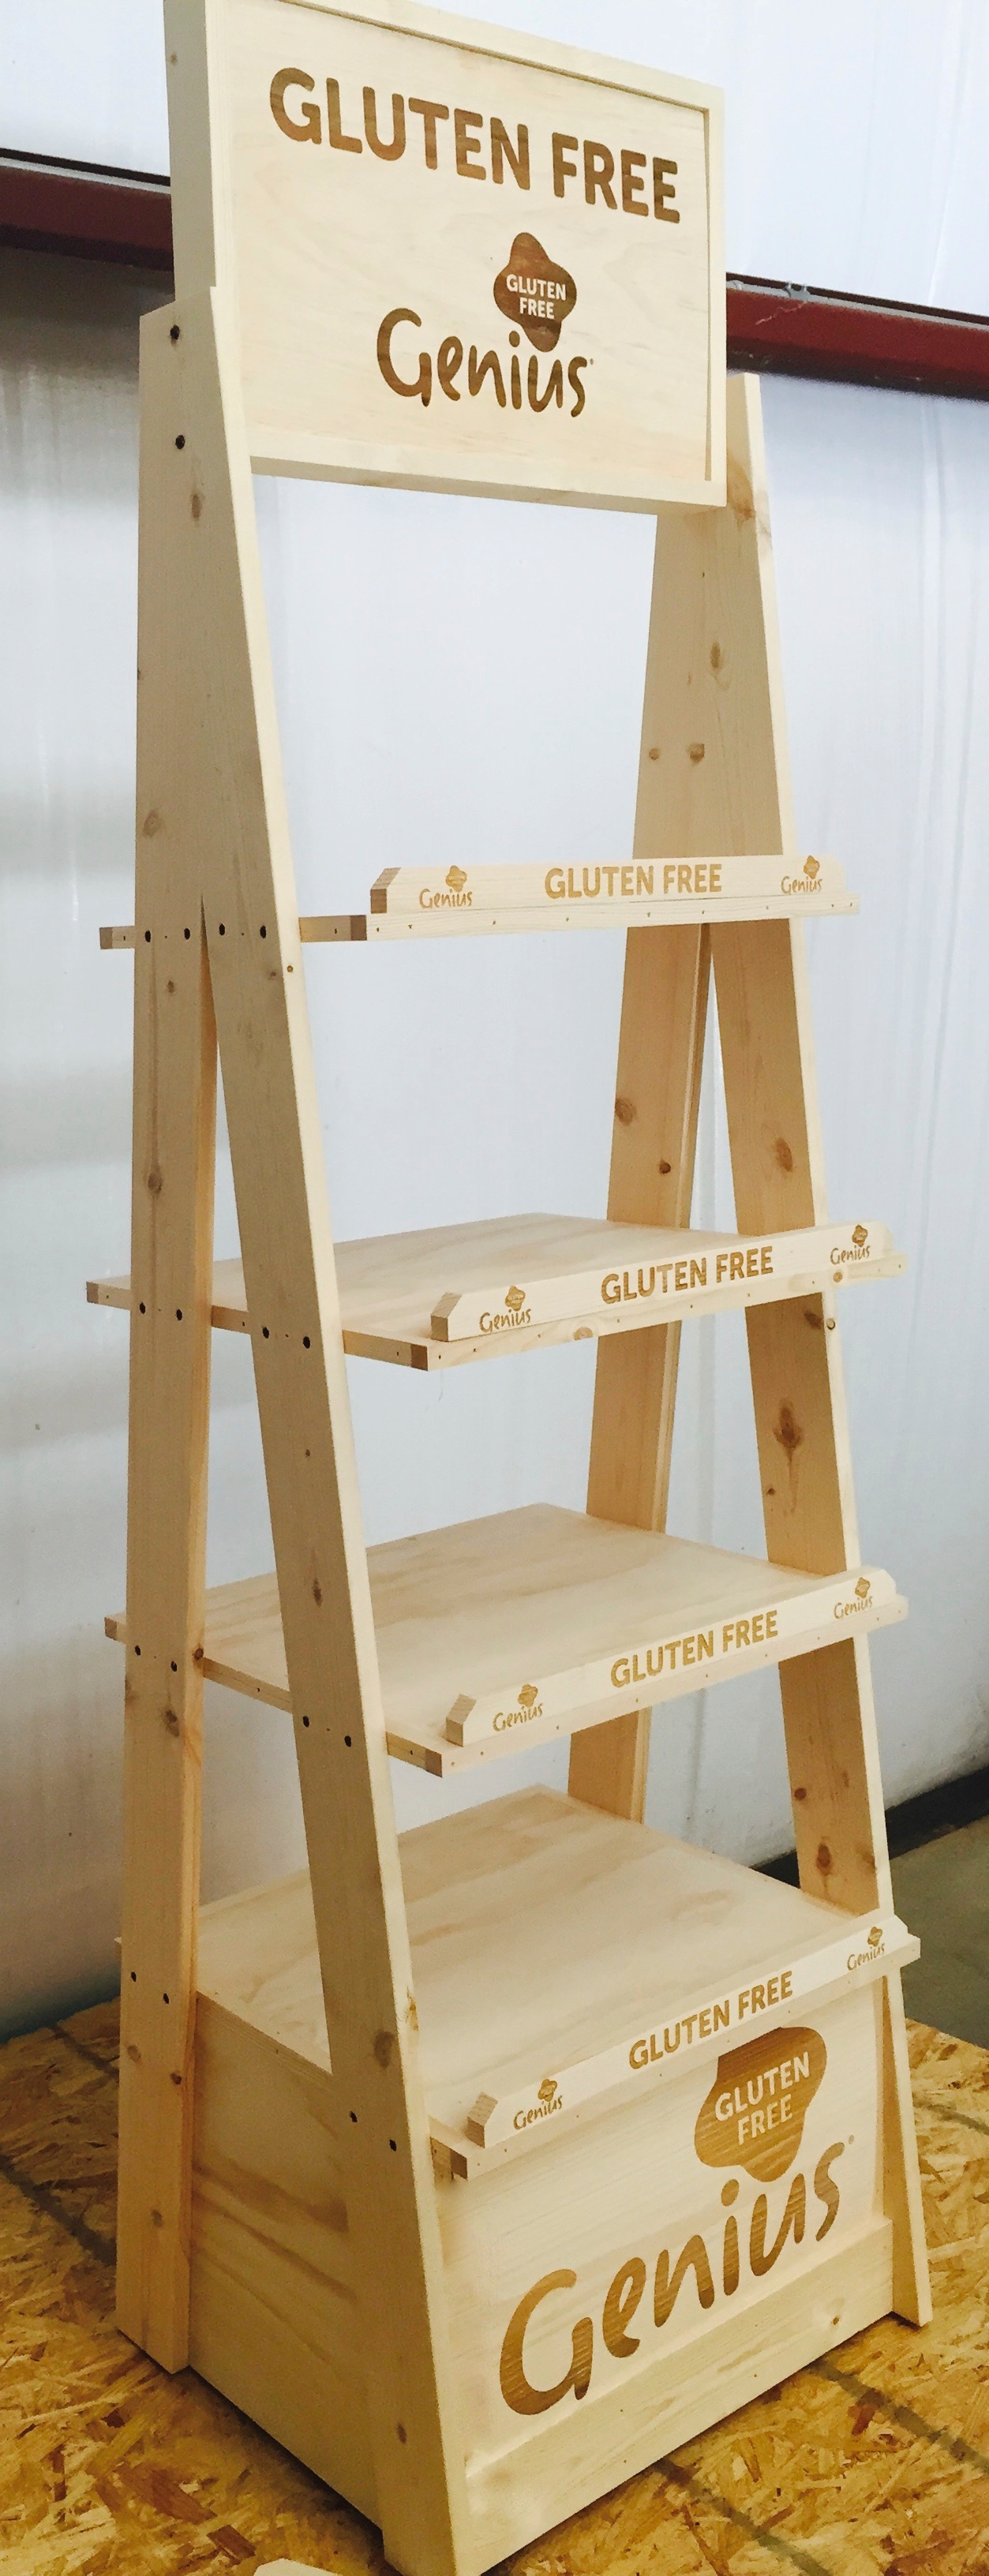 Rustic Wood Retail Store Product Display Fixtures Shelving Wood Floor Display Merchandisers Stands For Retail Product